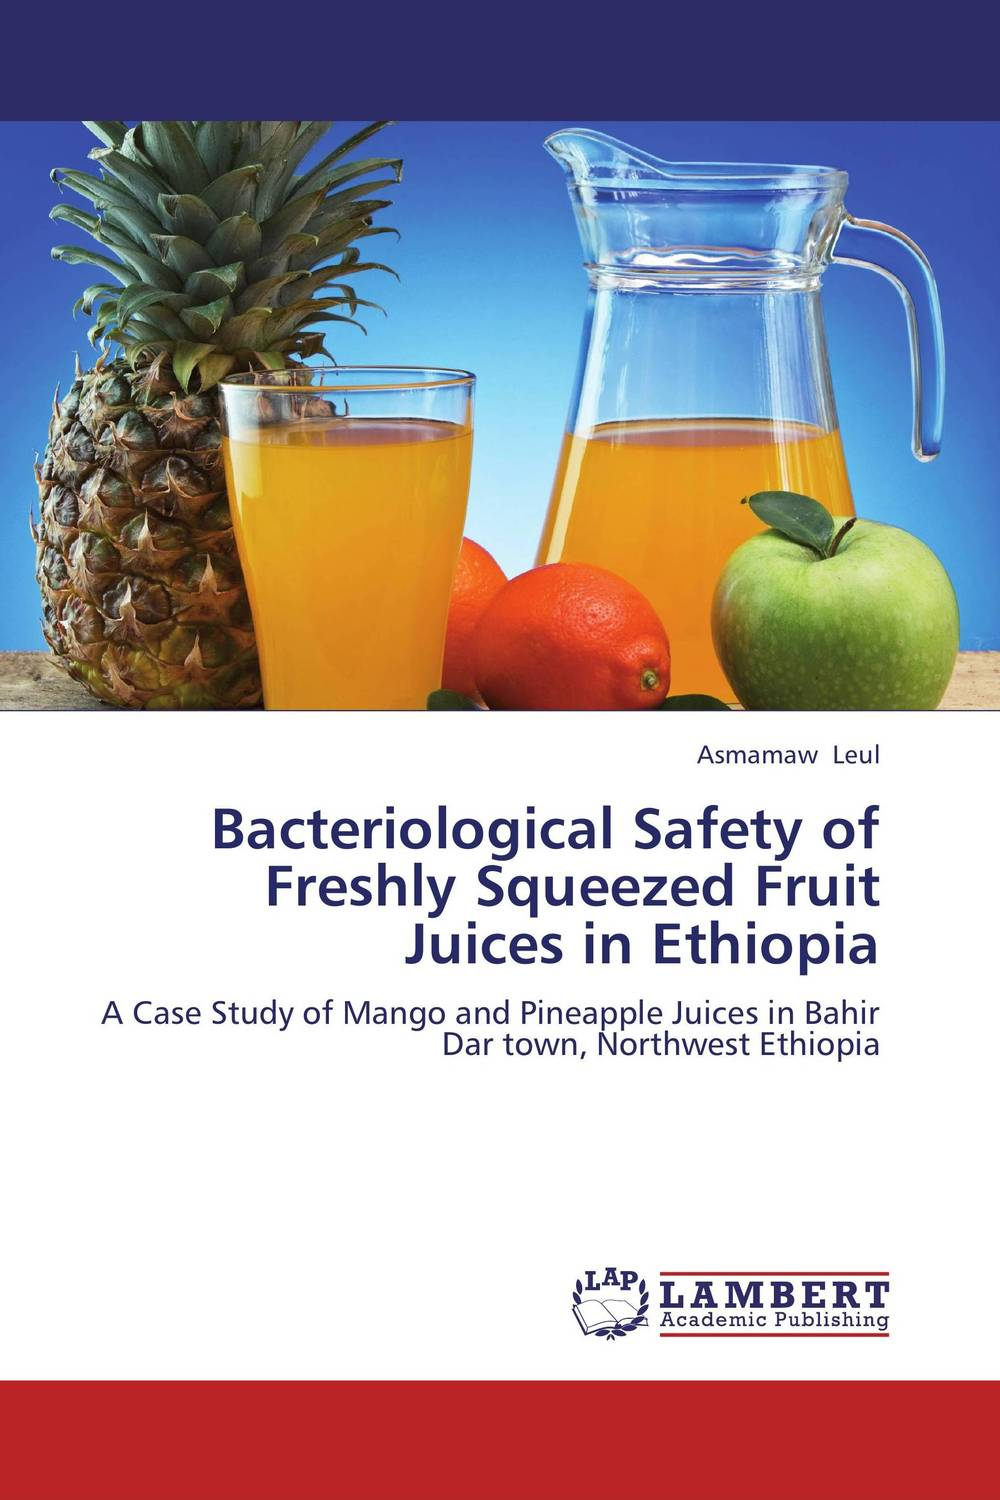 Bacteriological Safety of Freshly Squeezed Fruit Juices in Ethiopia street food vendors